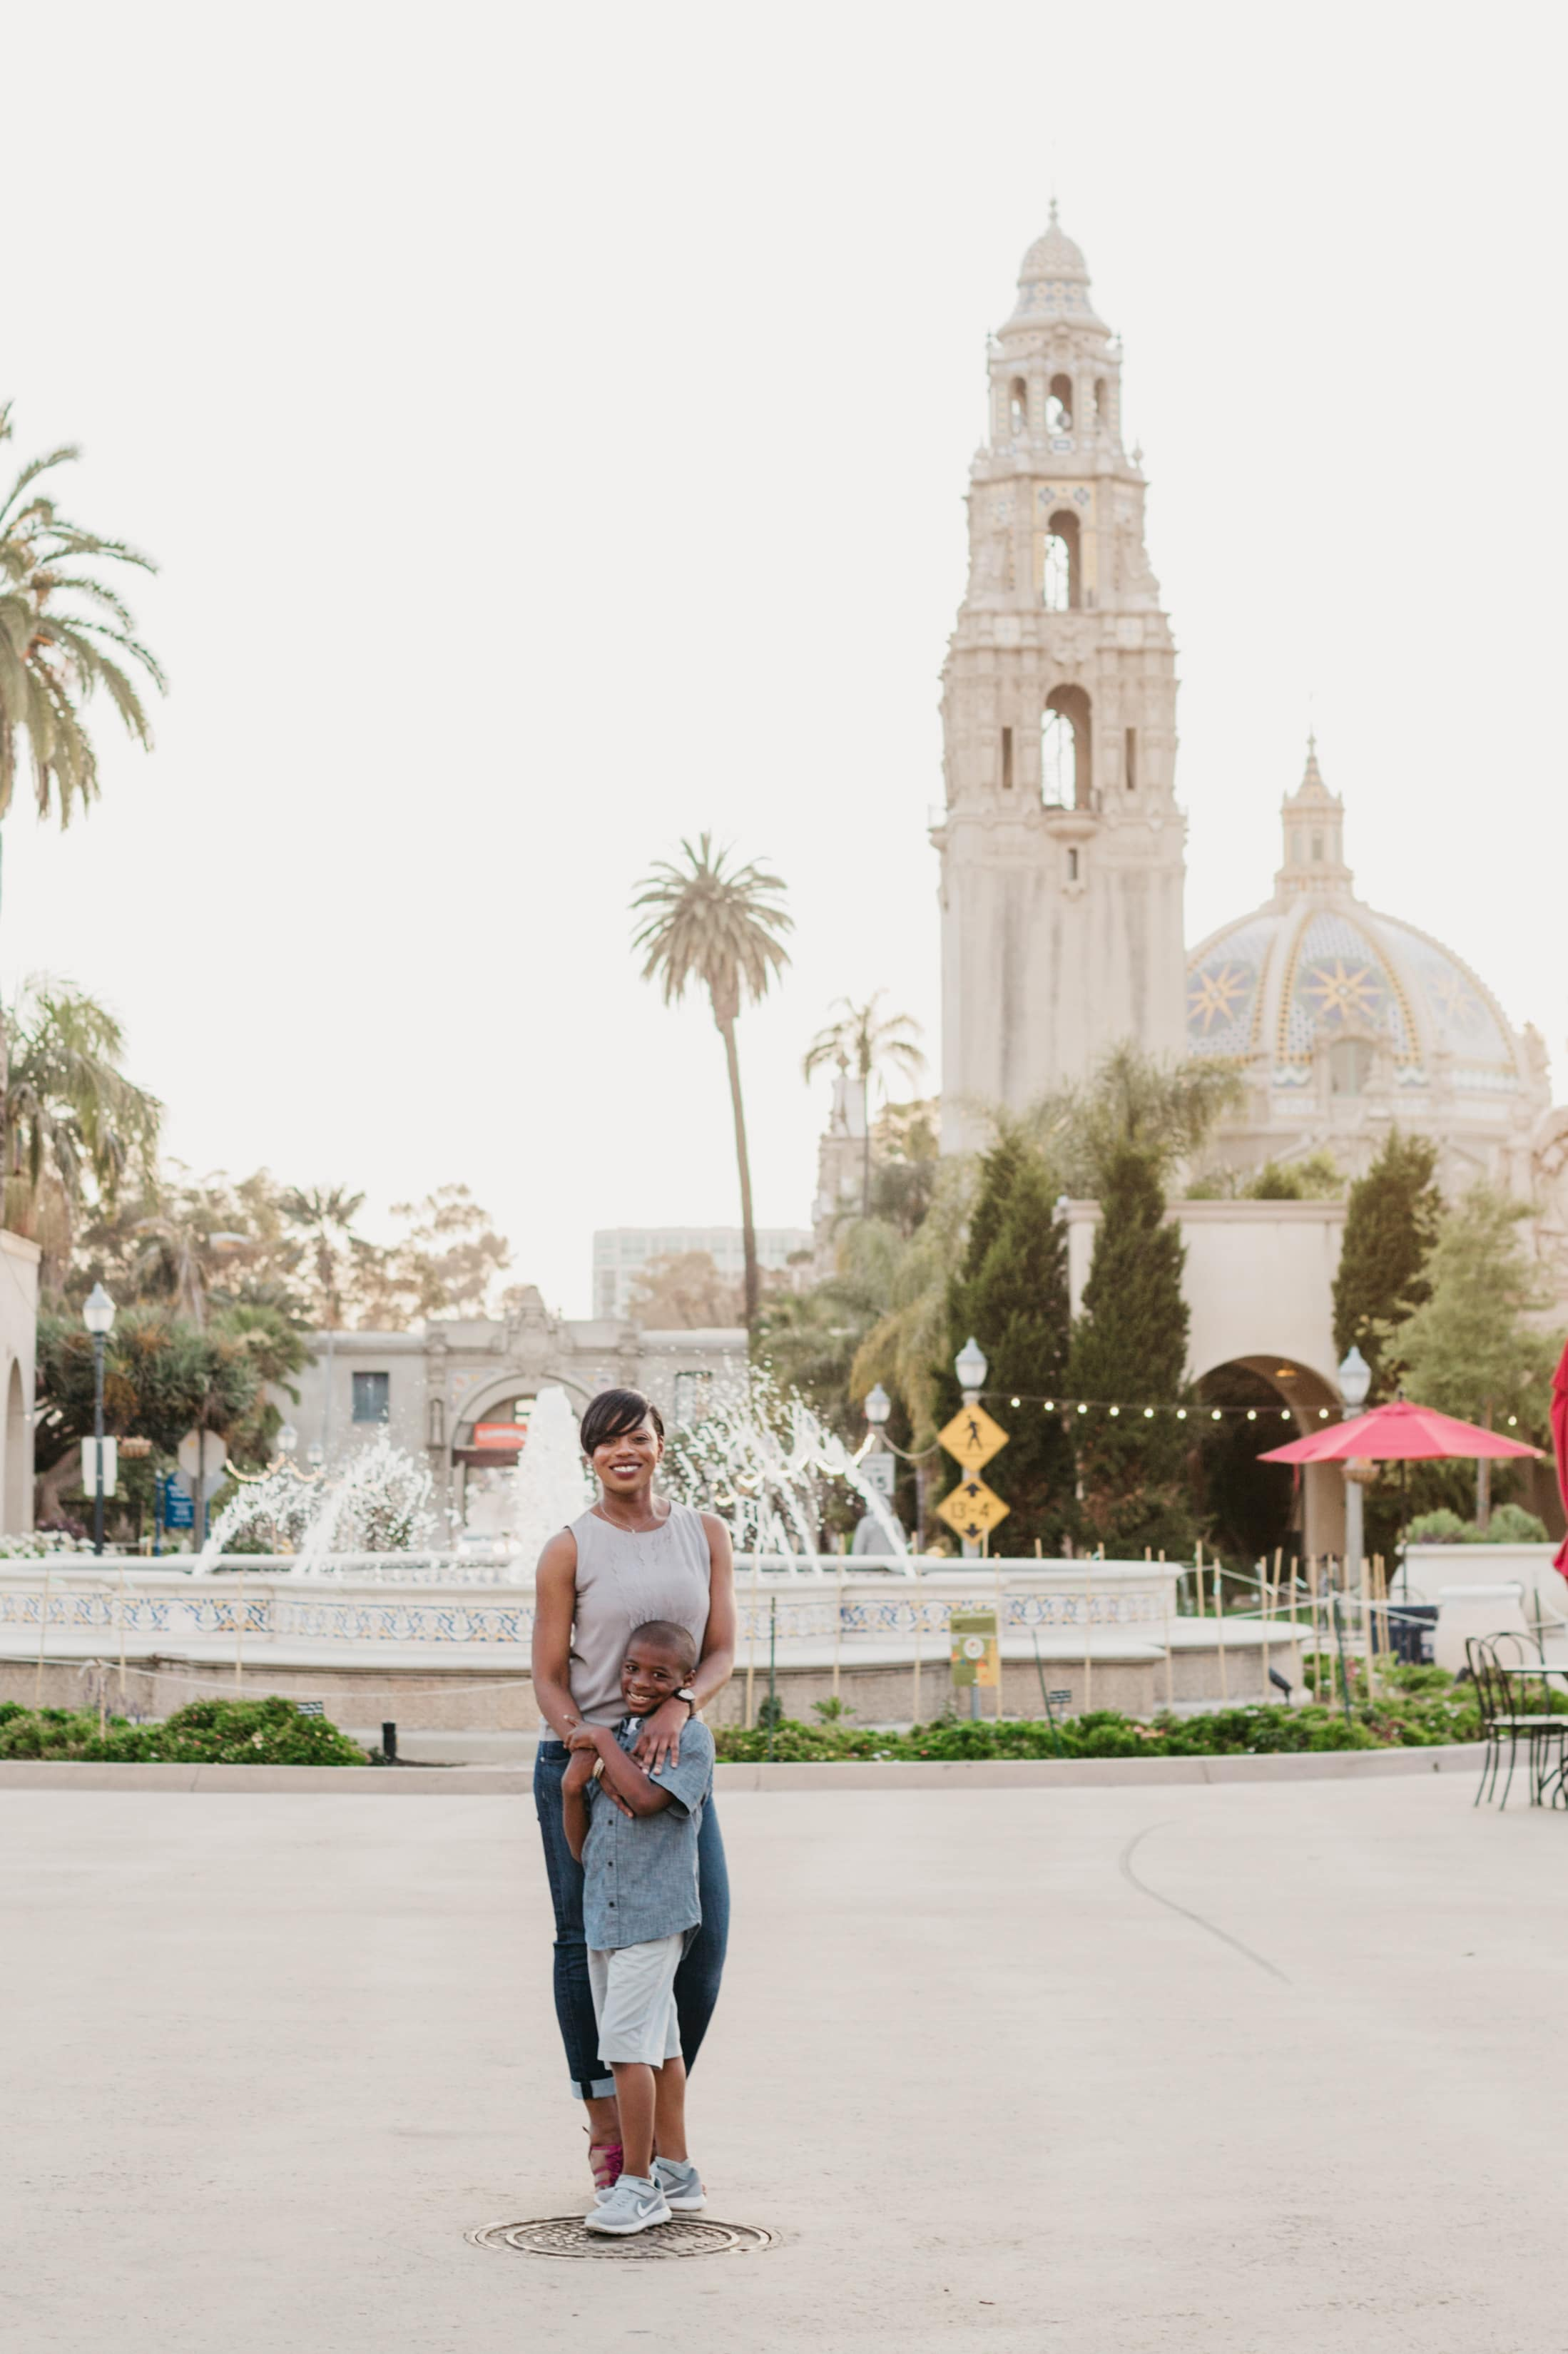 Balboa Park in San Diego is the perfect location for a photo shoot.